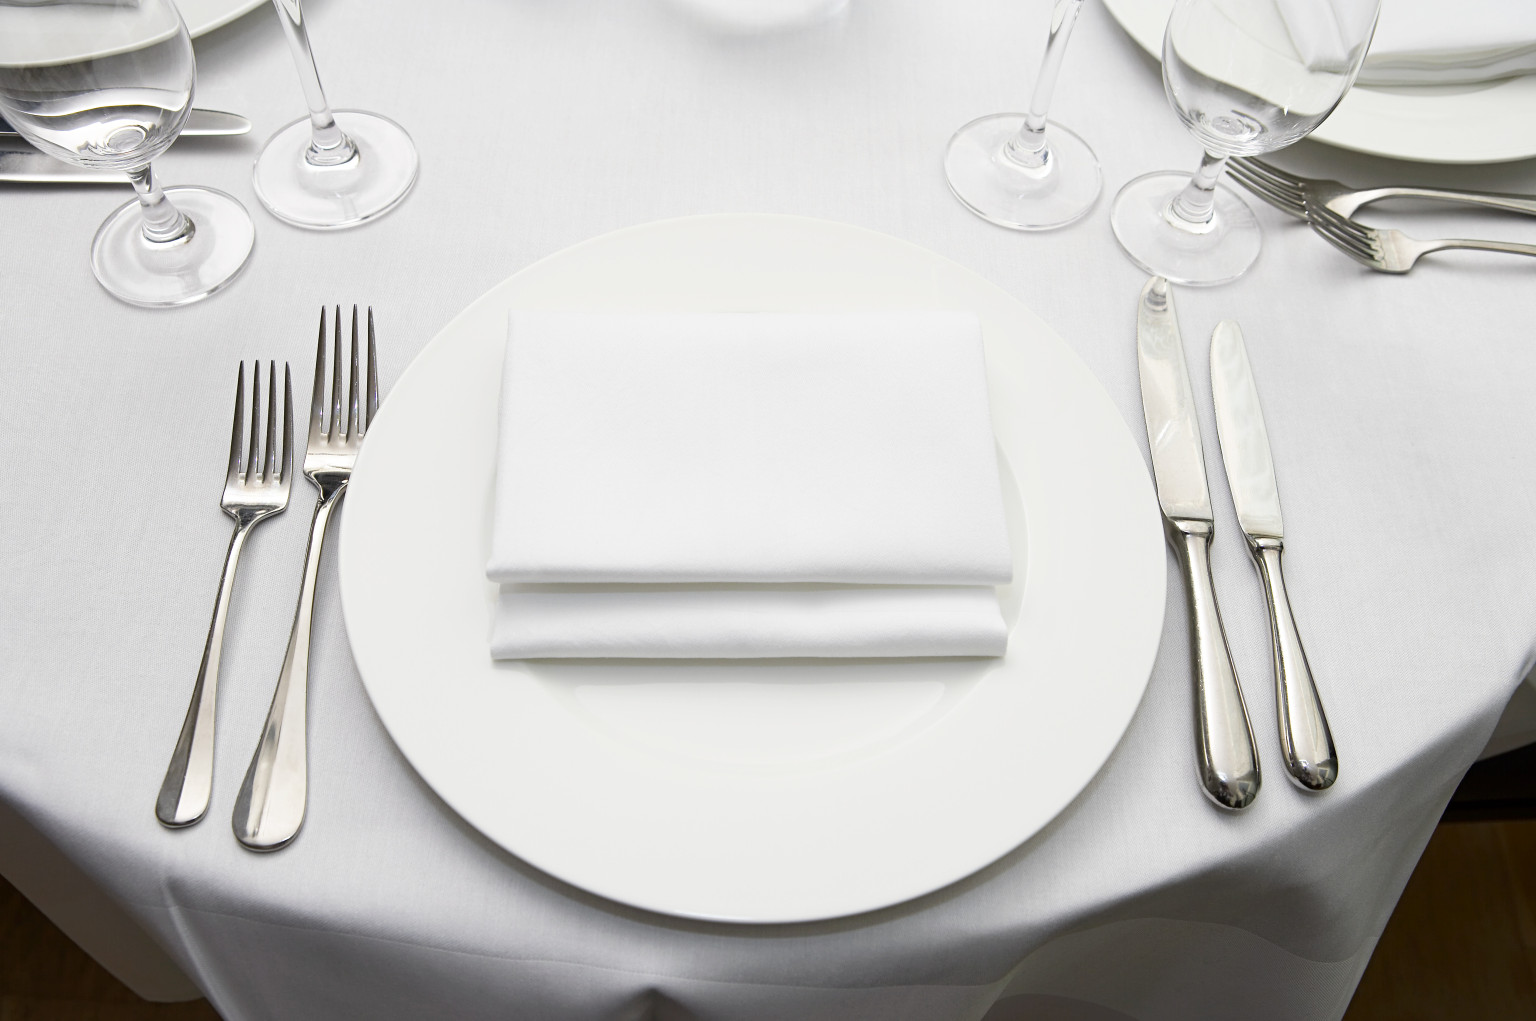 What is it like to eat alone at a fancy restaurant quora